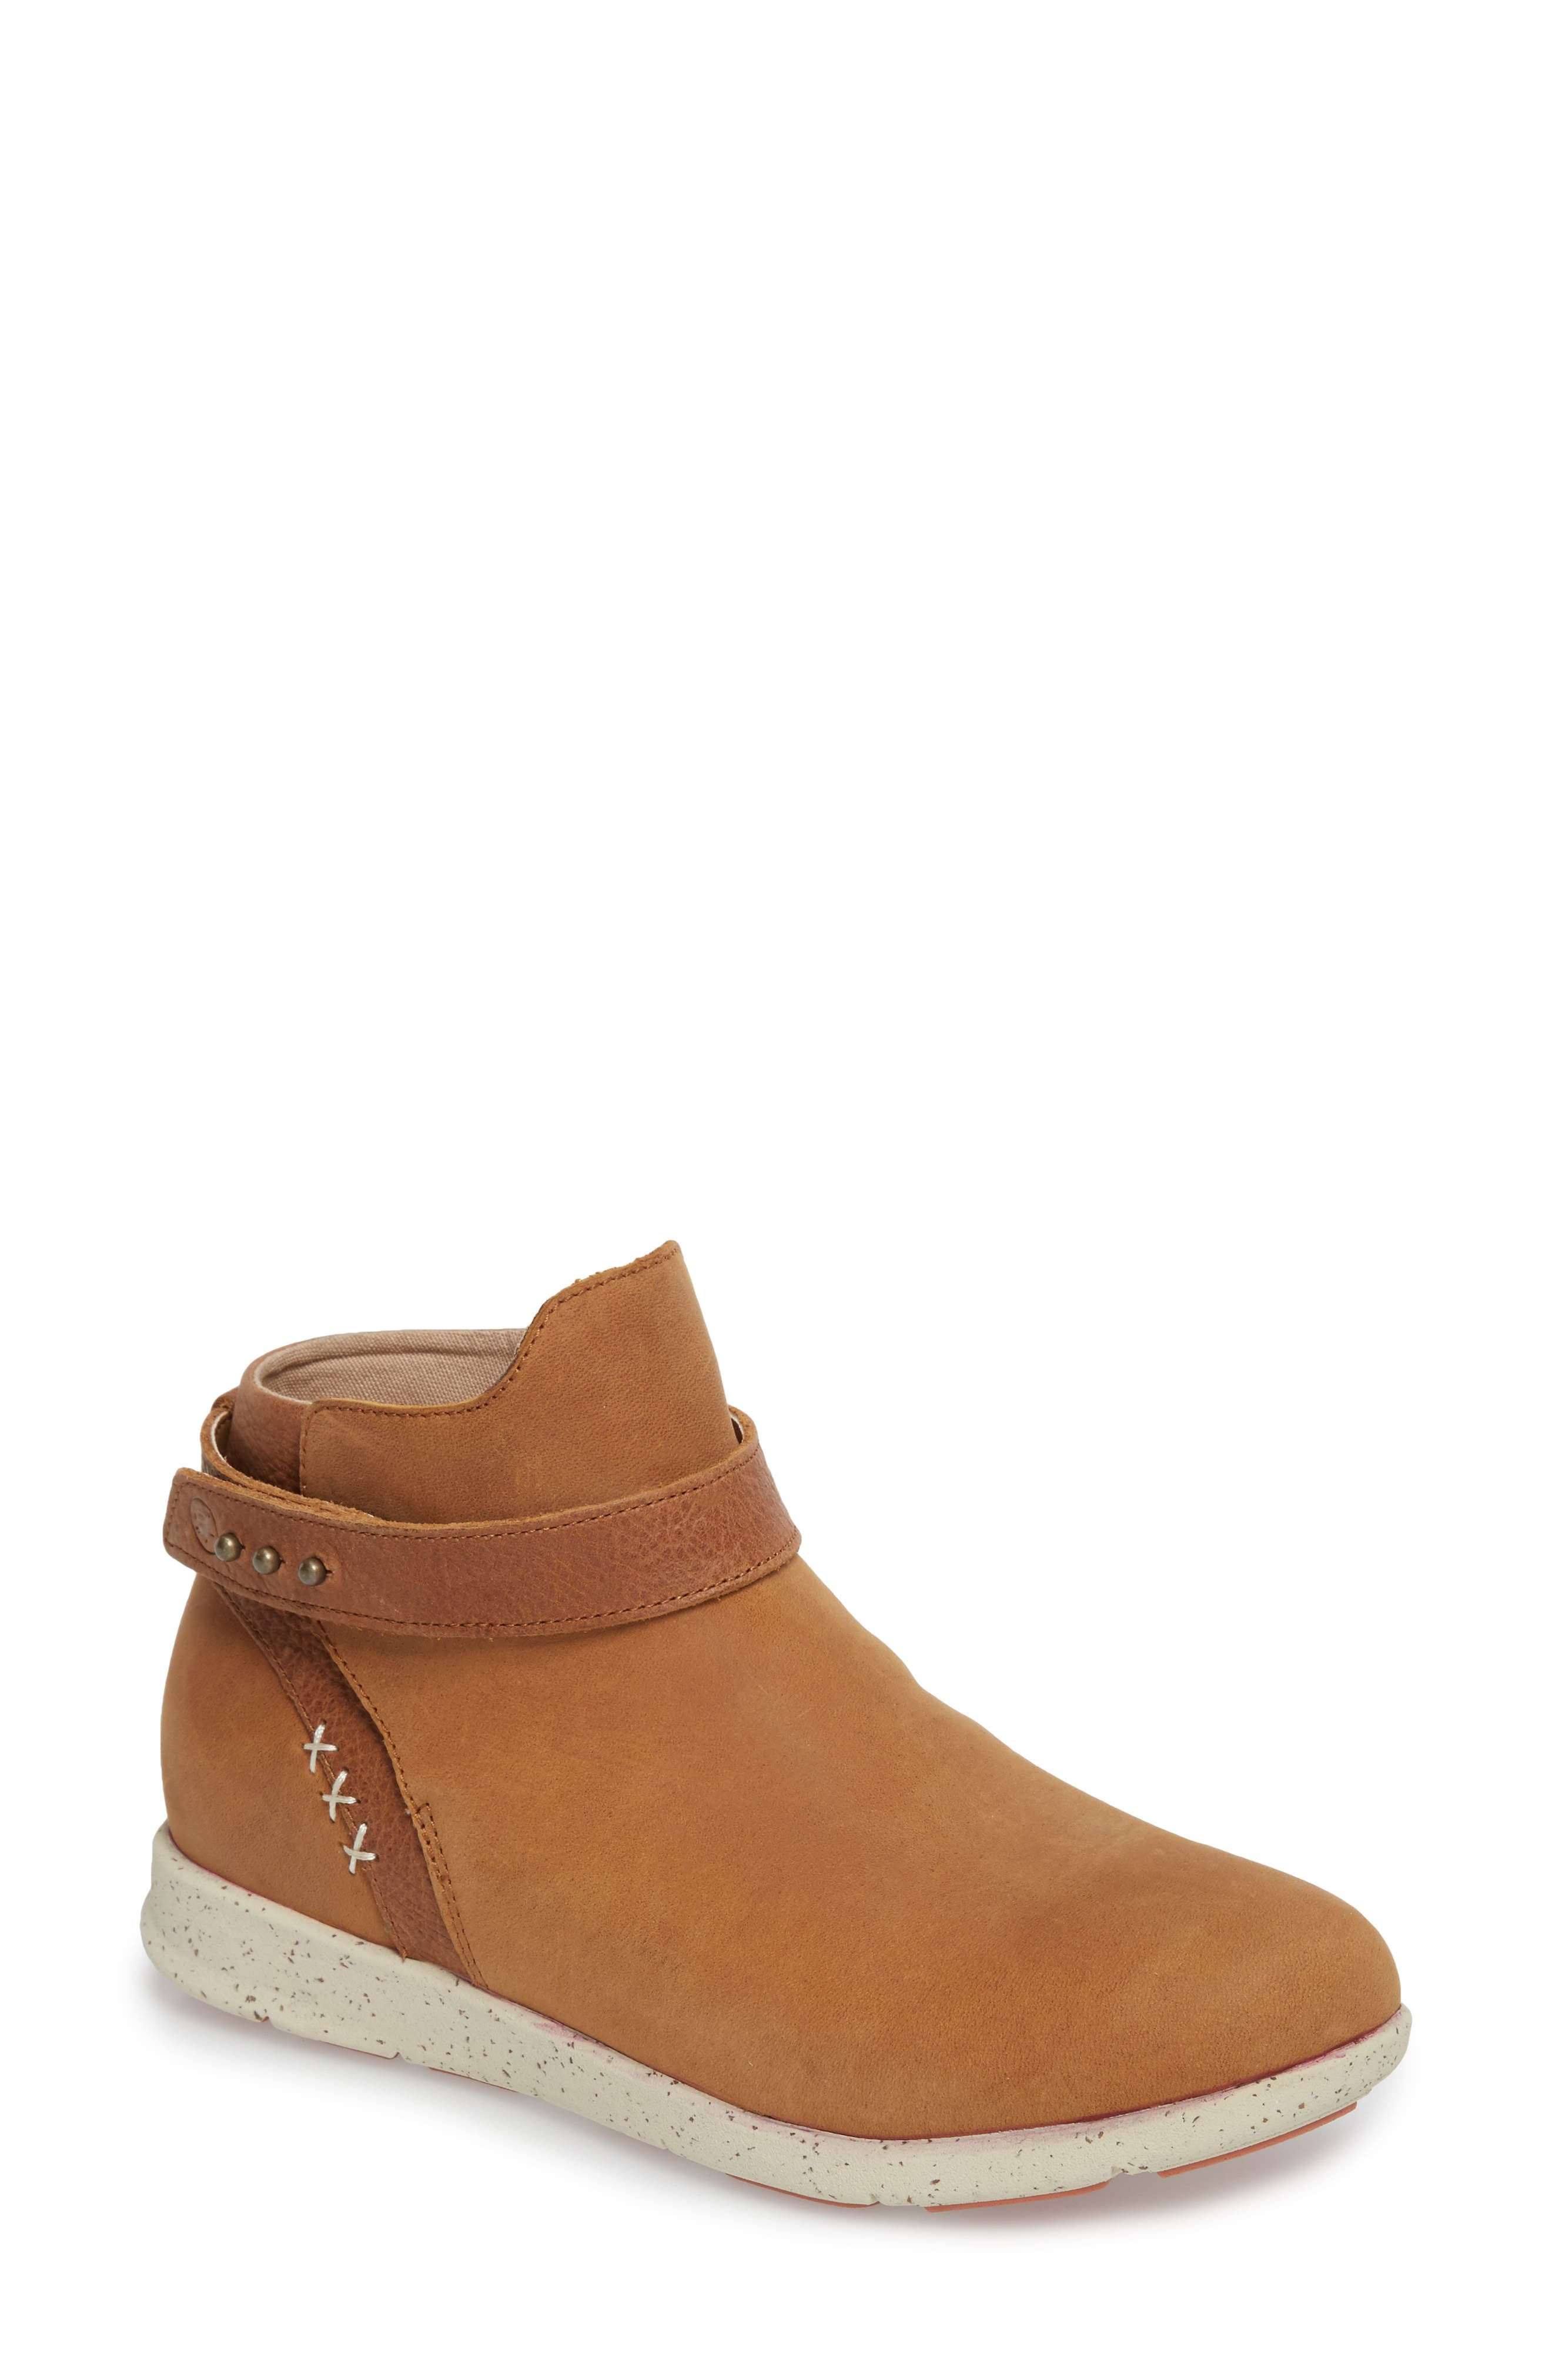 Ash Bootie,                         Main,                         color, BROWN LEATHER